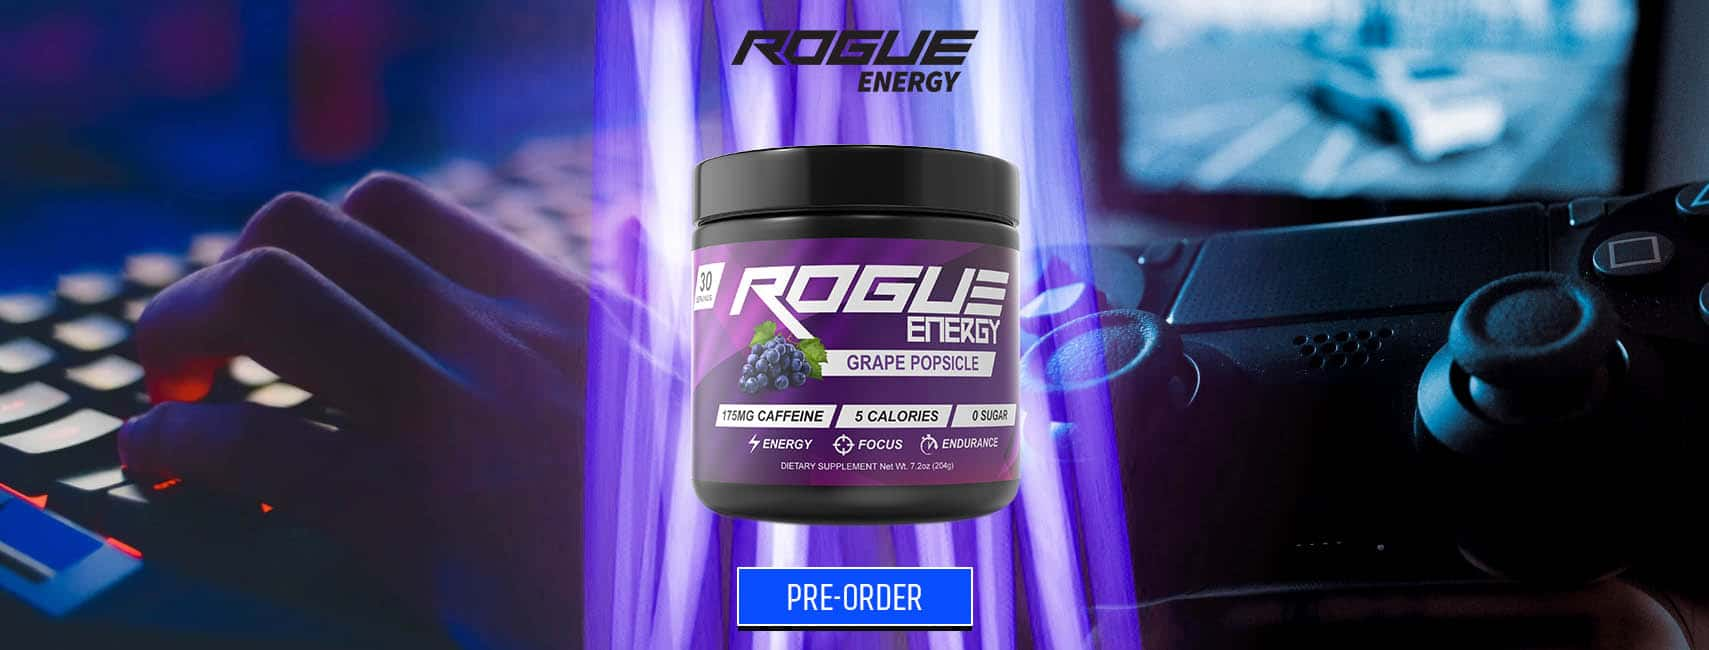 rogue energy review